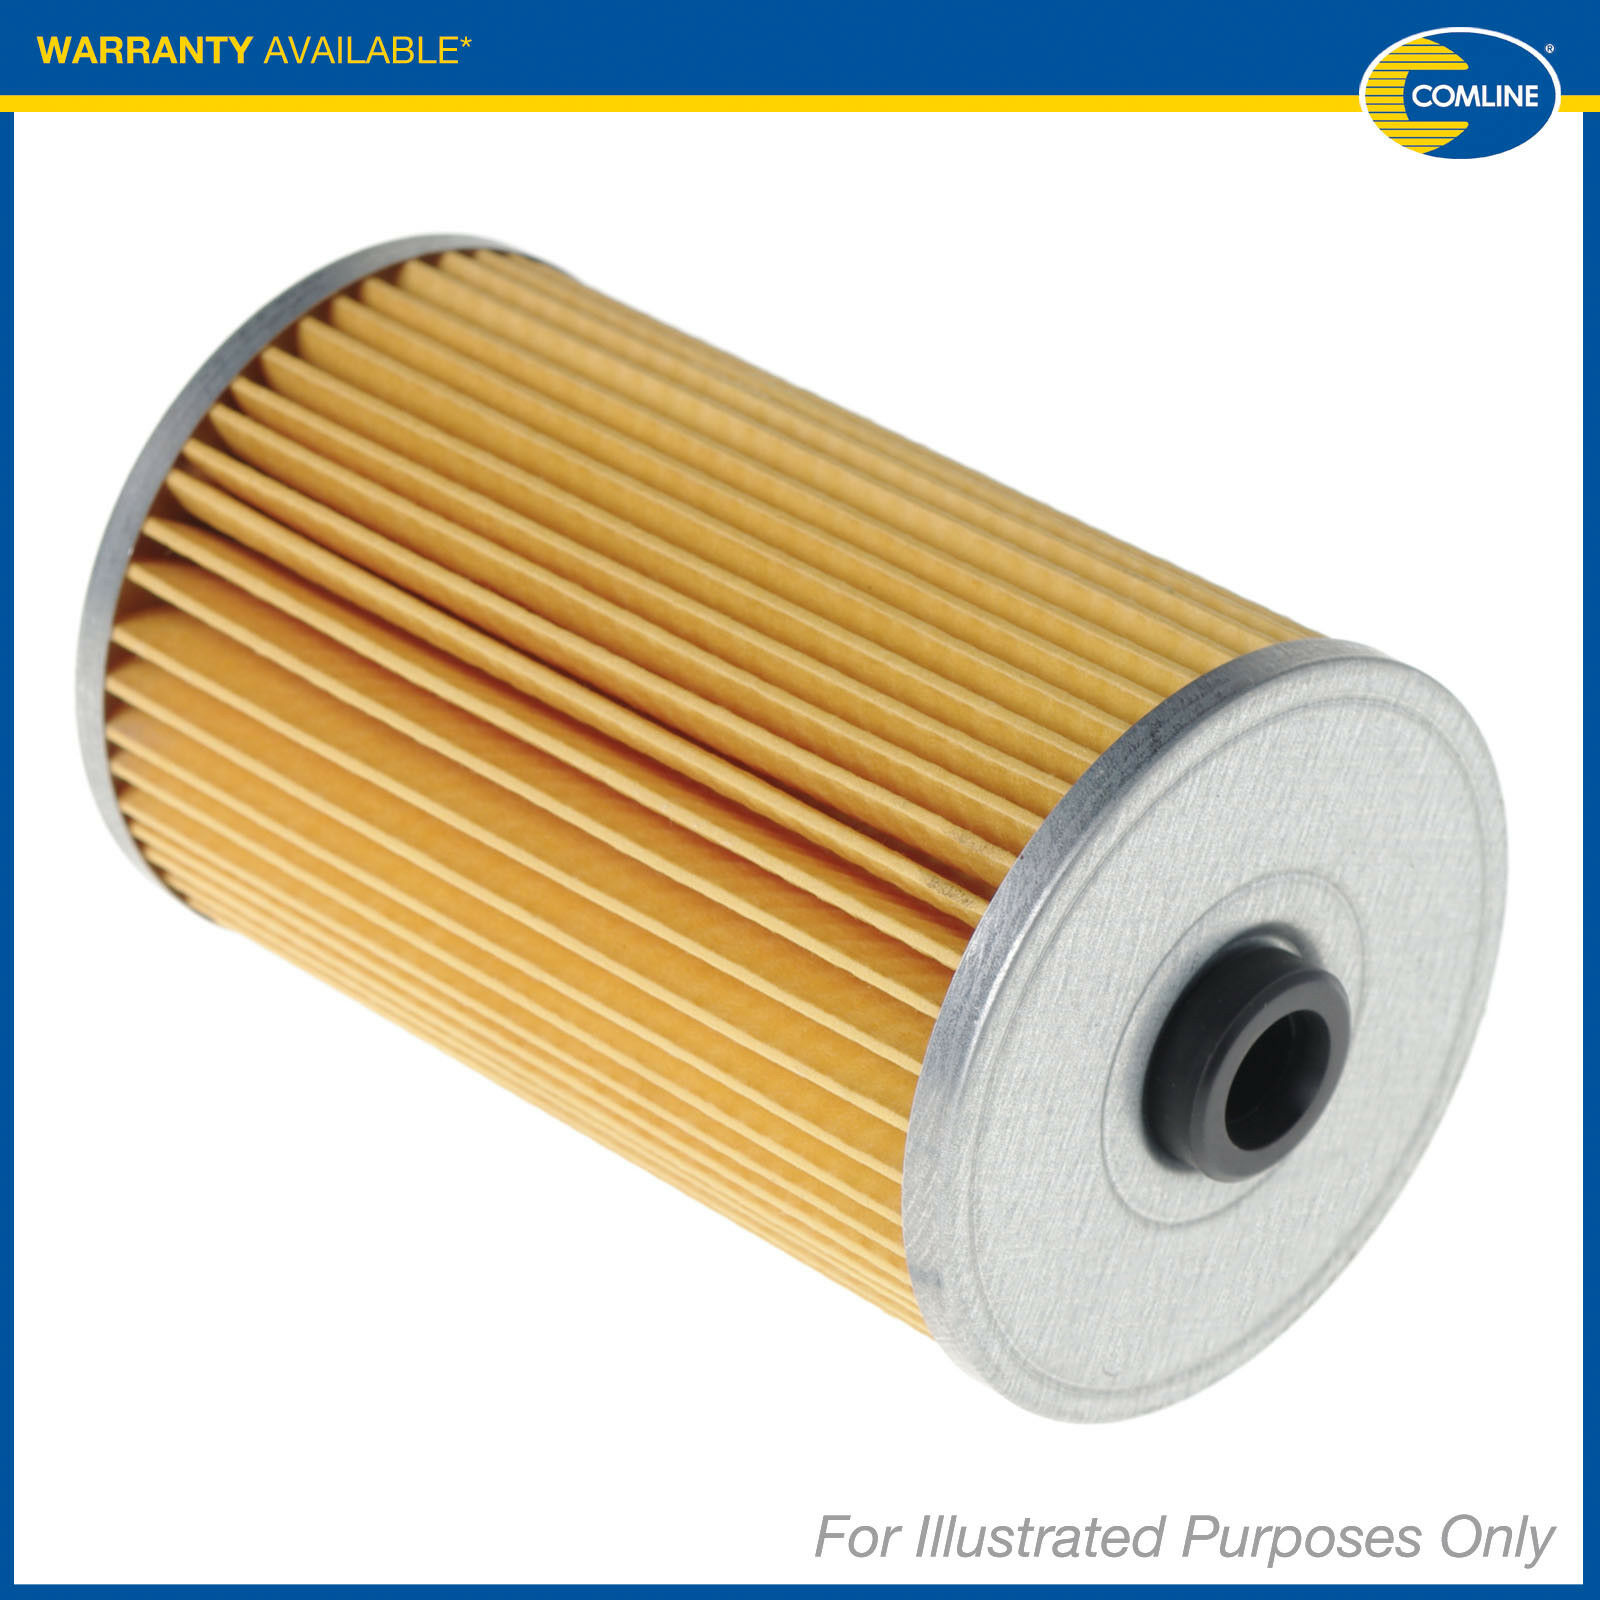 Volvo V70 Mk2 24 D5 Genuine Comline Fuel Filter Oe Quality 1998 S70 Location Replacement Insert 1 Of 1only Available